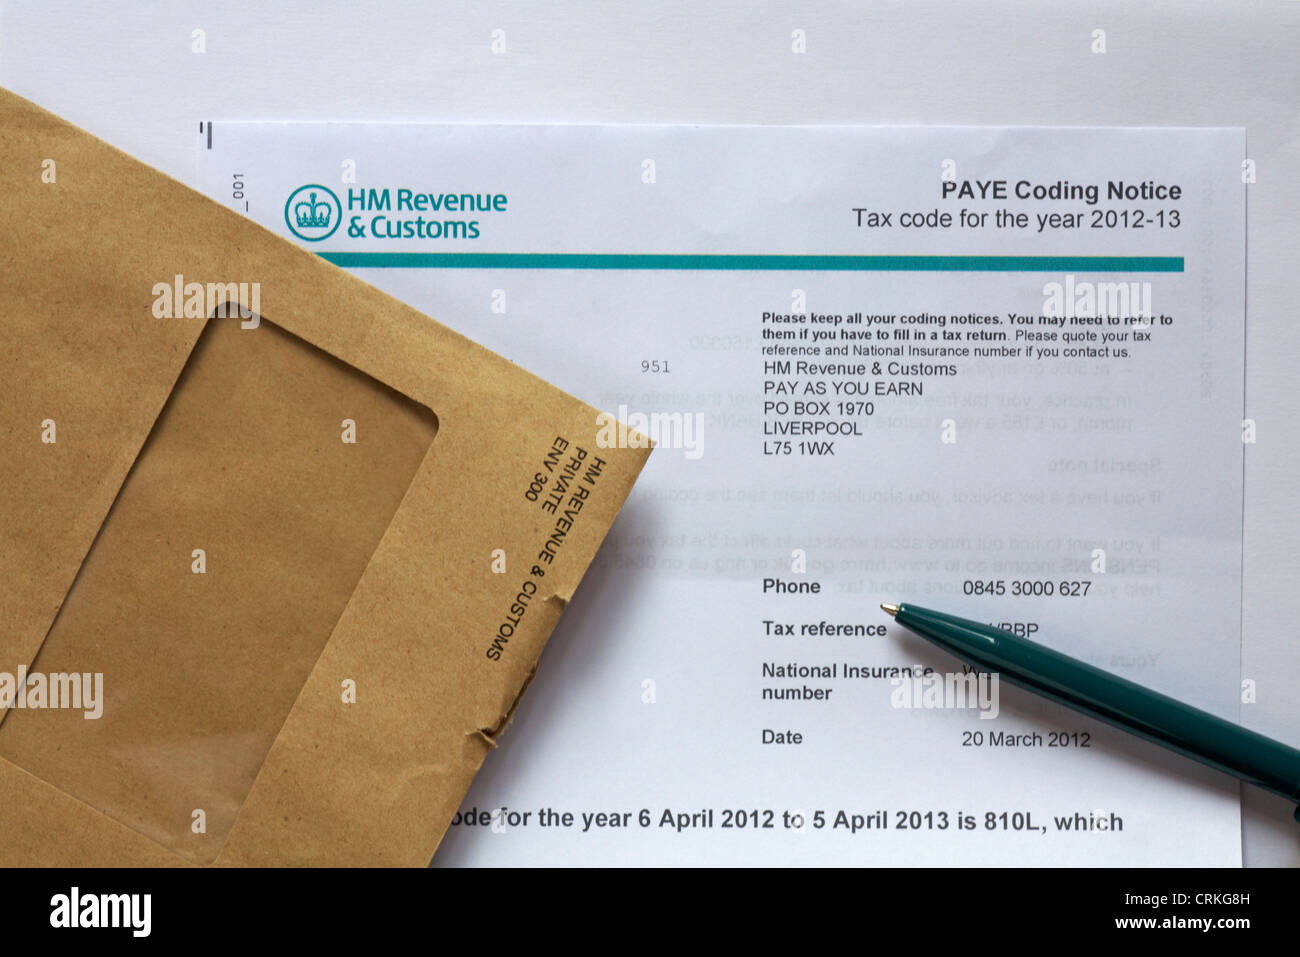 Tax uk envelope stock photos tax uk envelope stock images alamy hm revenue customs paye coding notice tax code for the year 2012 13 set sciox Image collections